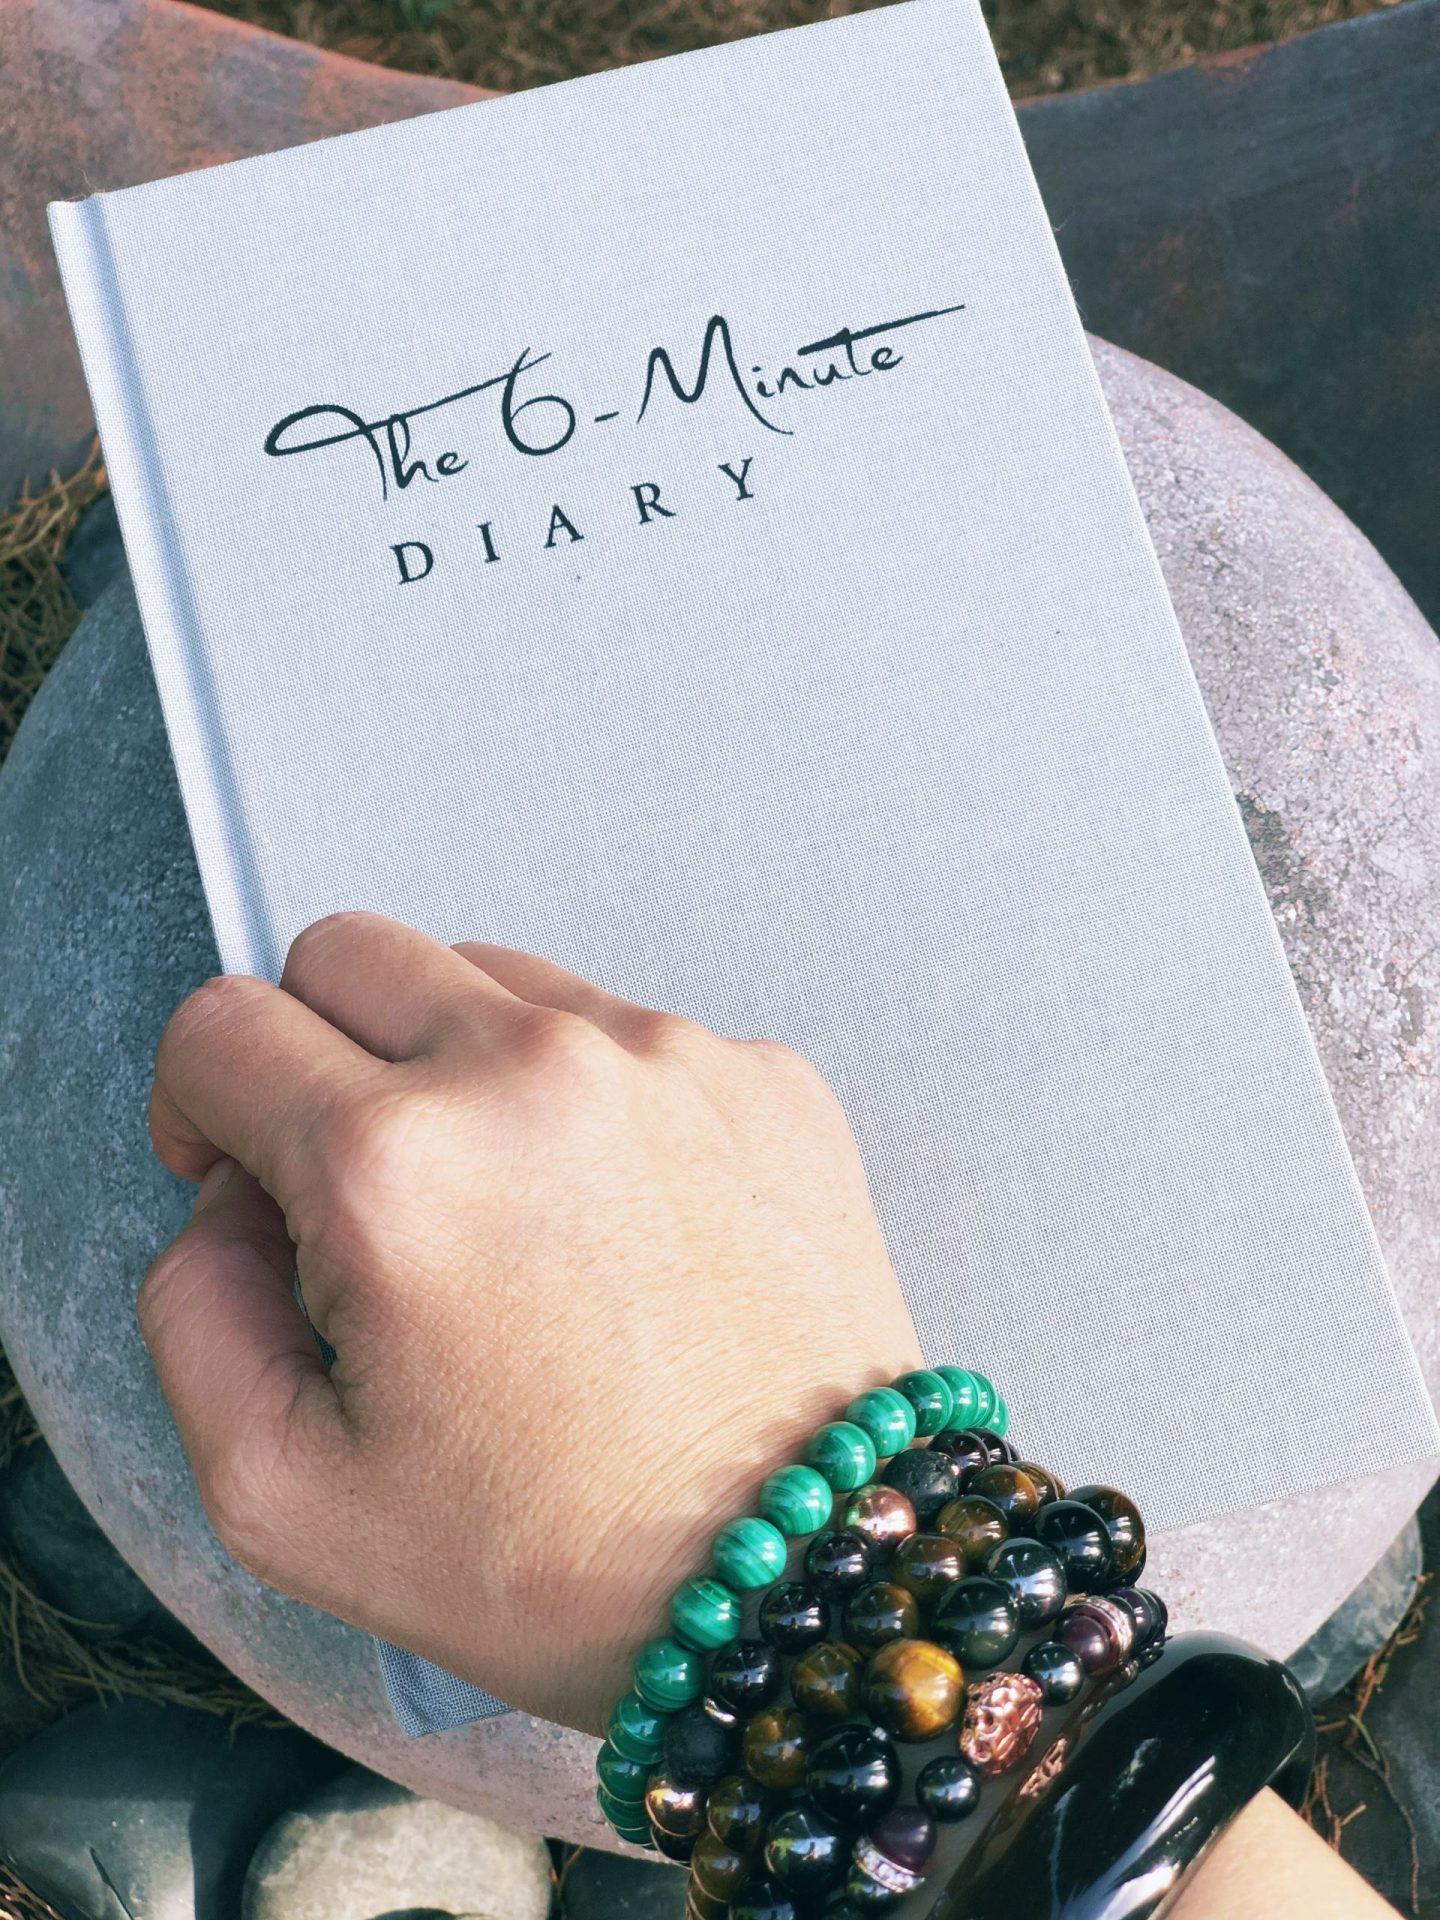 the 6 minute diary self-help book